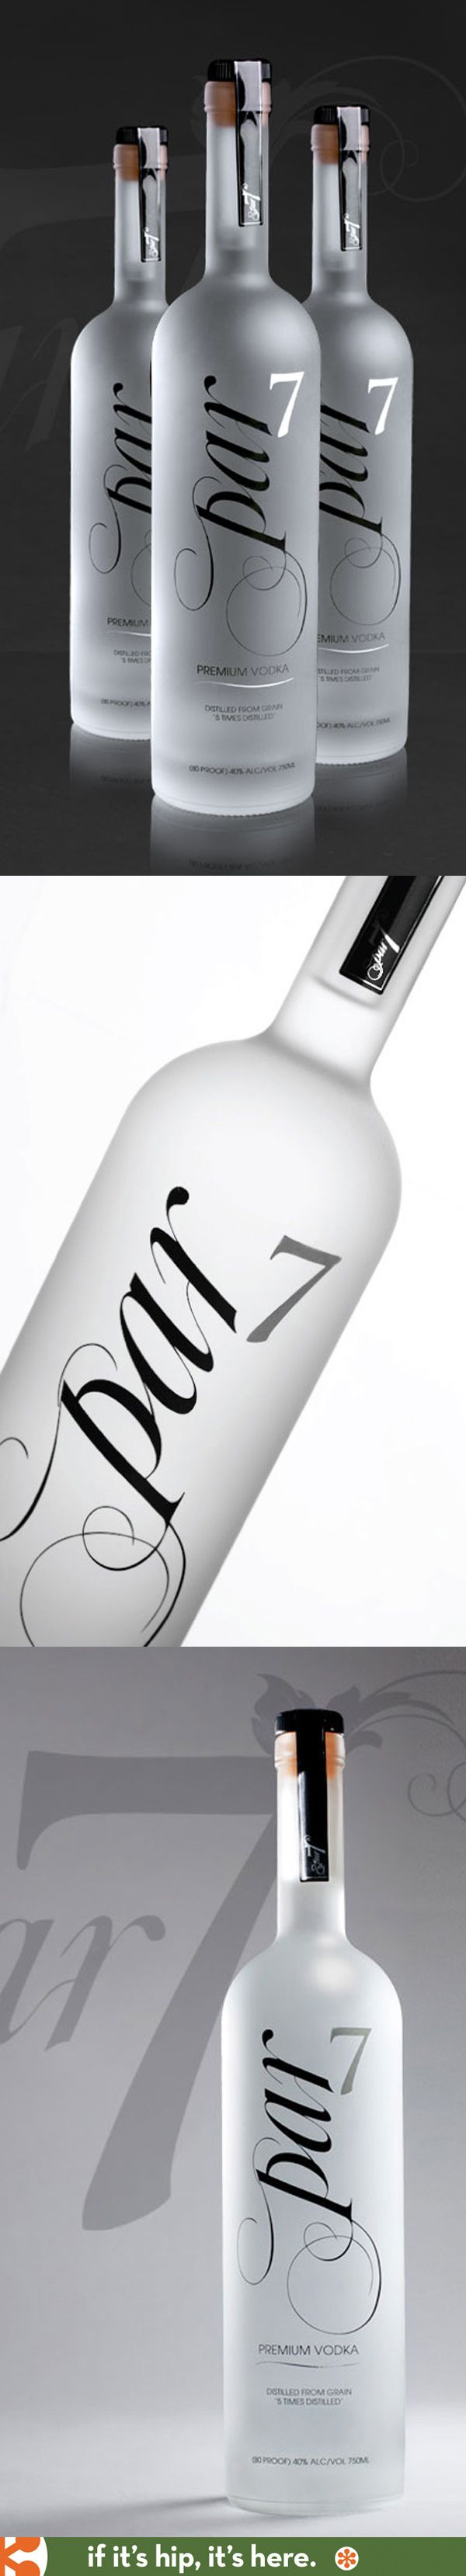 Par 7 Premium Vodka bottle